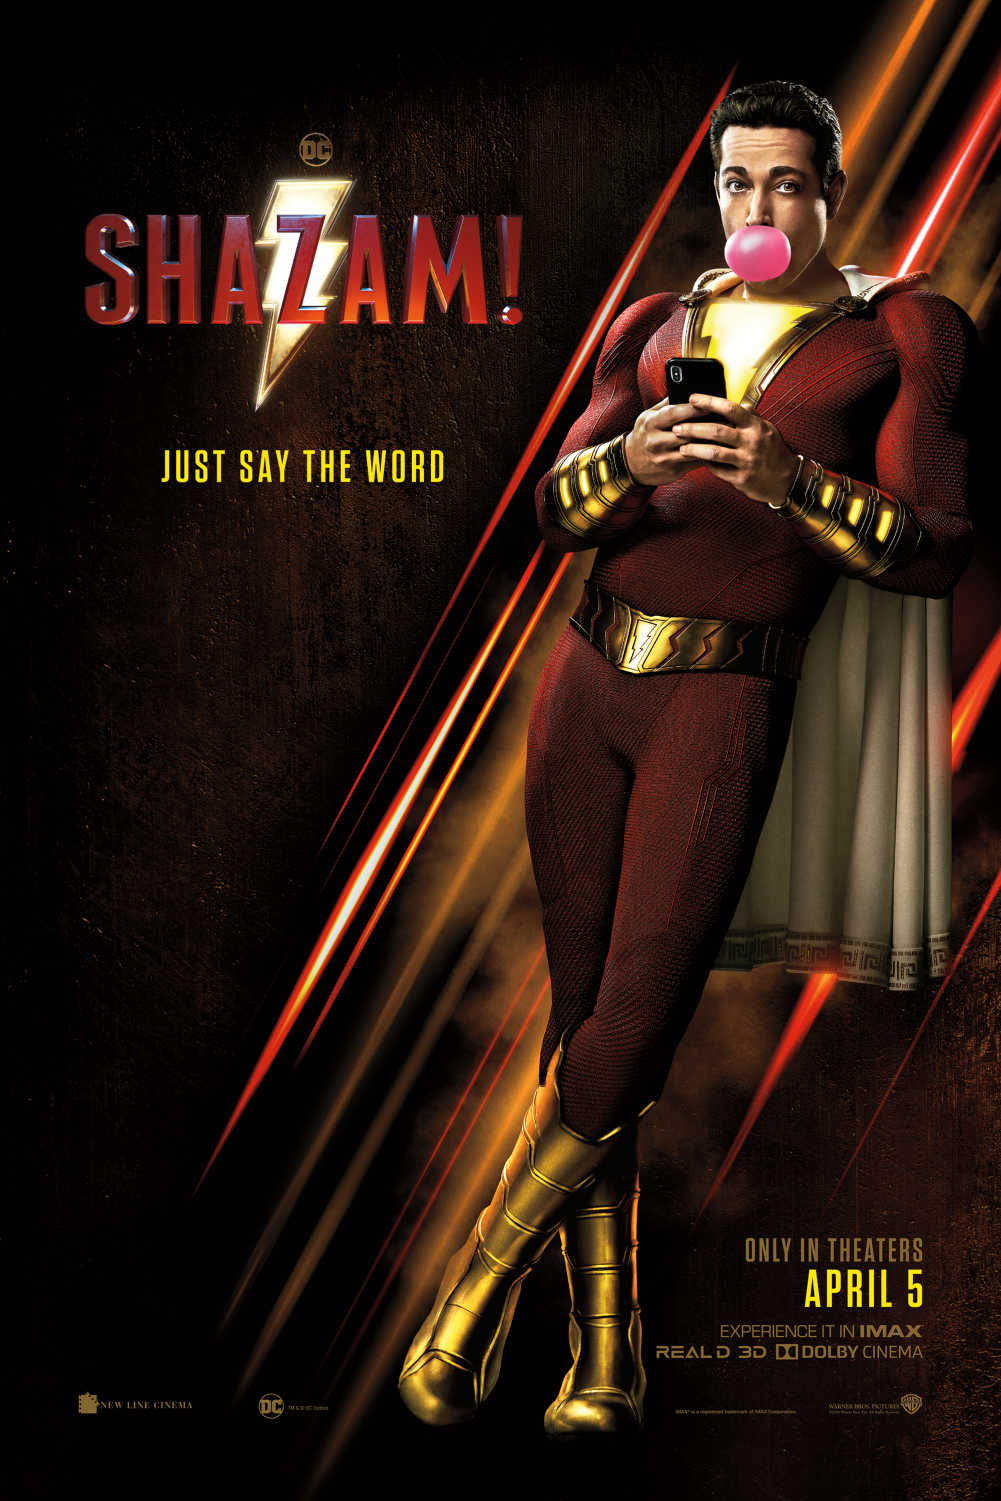 The most charming and hilarious superhero from the DC comics, Shazam! zoomed into theaters on April 5, 2019.